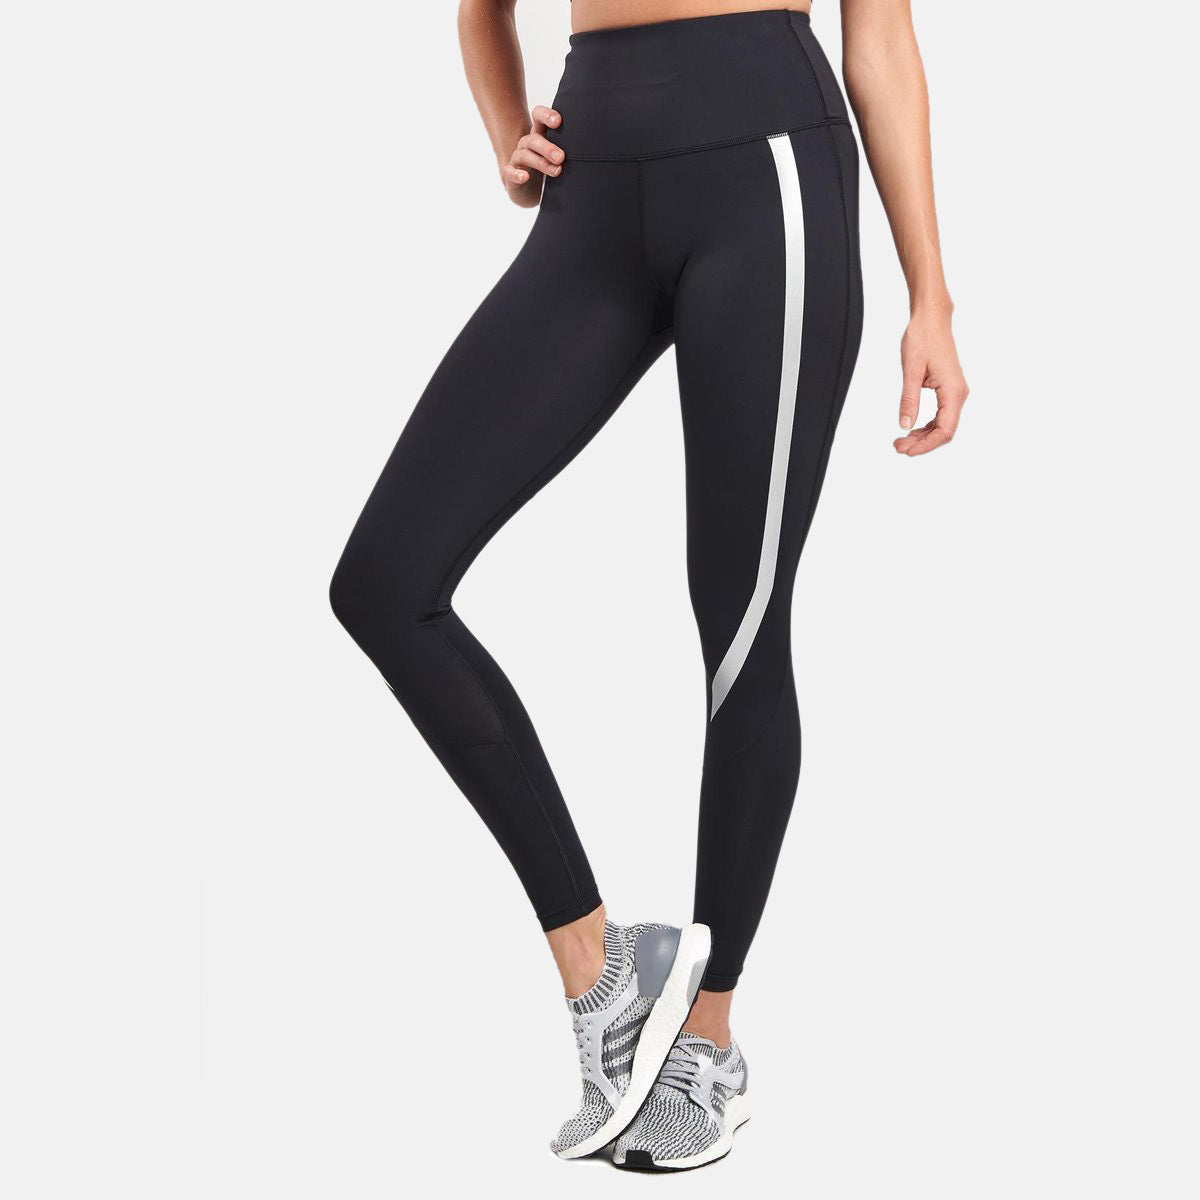 2aa09d36 2XU Hi-rise compression tights – Maternity Angel